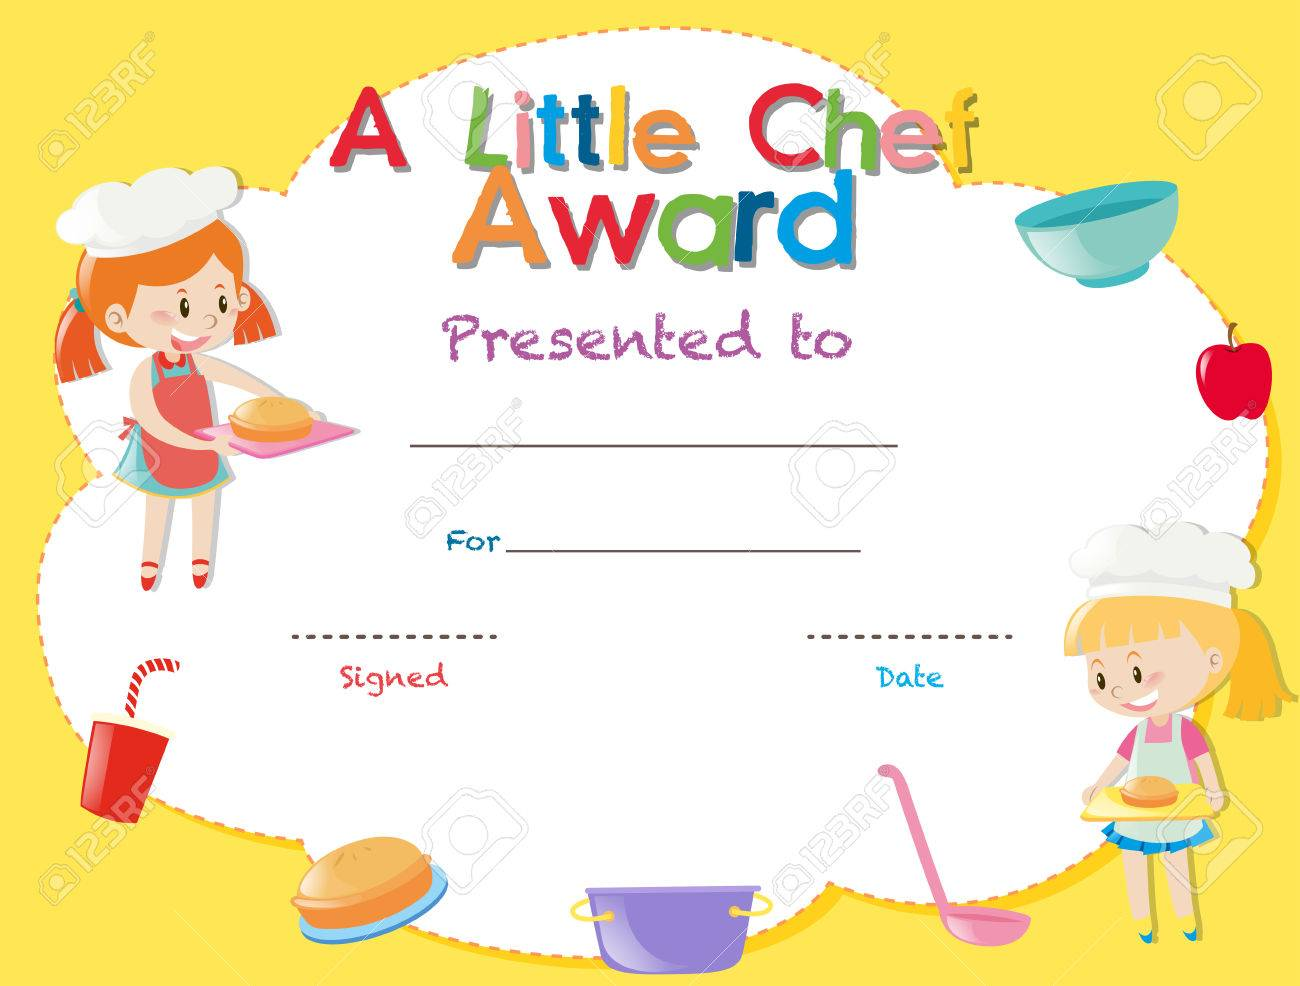 Culinary arts diploma certificate templates by canva.